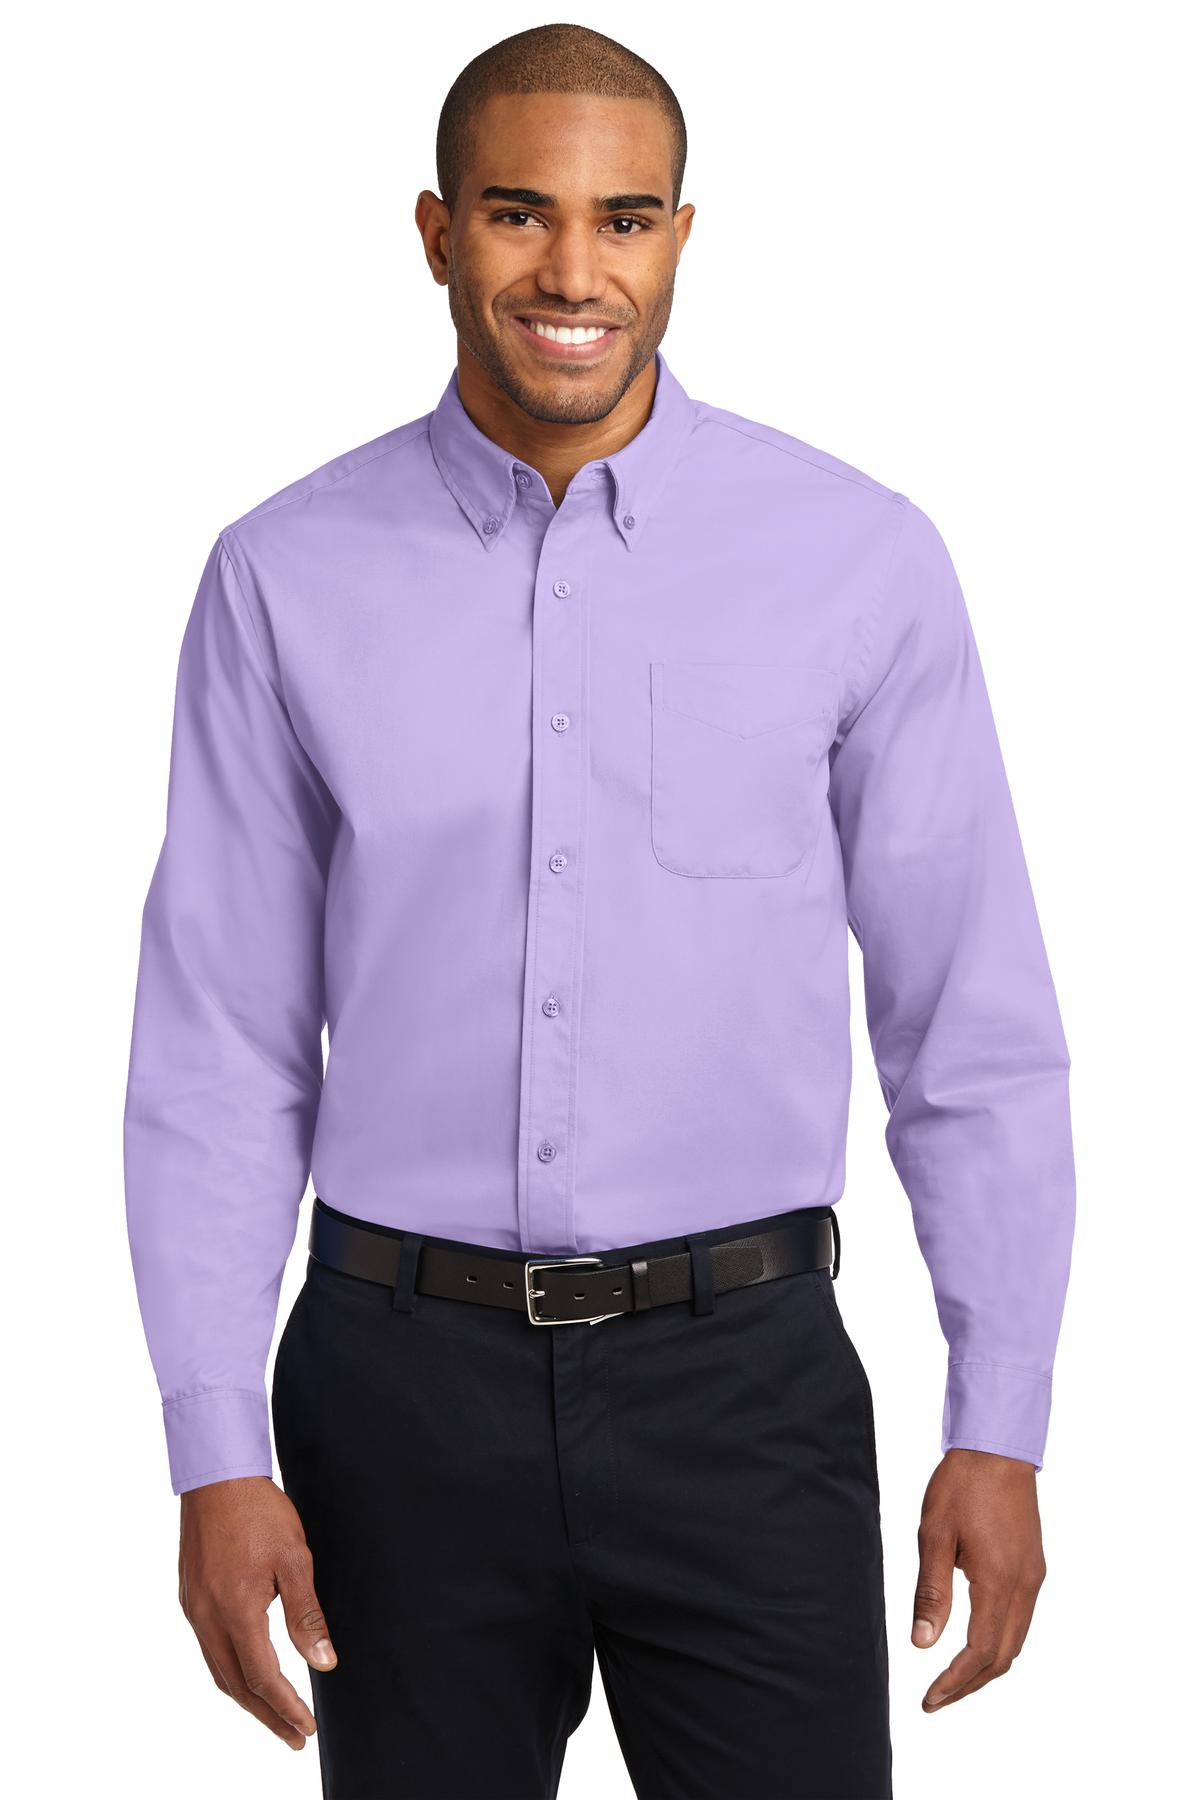 Port Authority ®  Long Sleeve Easy Care Shirt.  S608 - Bright Lavender